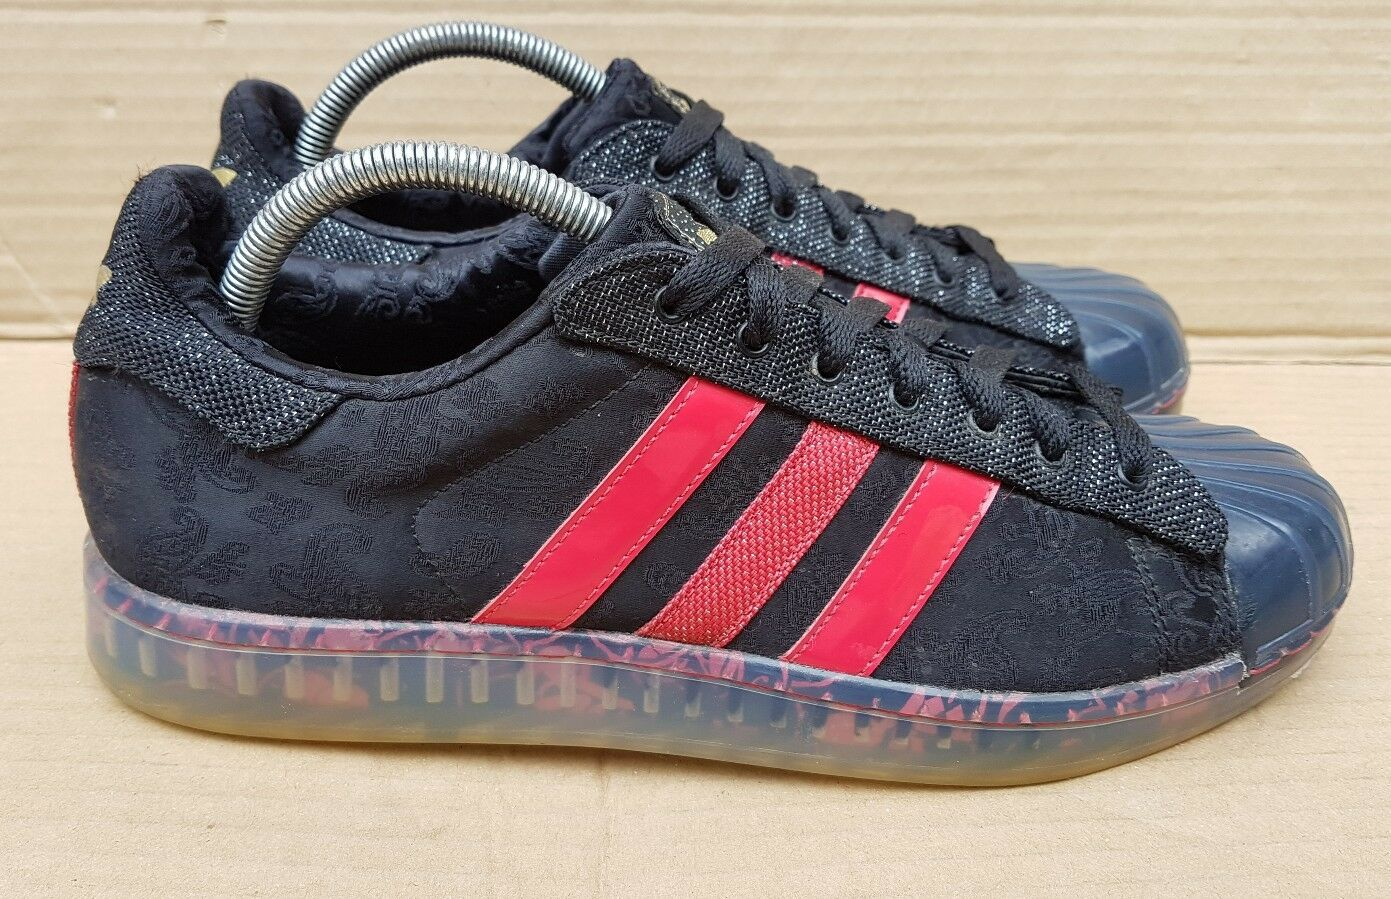 ADIDAS SUPERSTAR CLR 7 SINS OF SOLE TRAINERS BLACK AND ROT SIZE 7 UK RARE